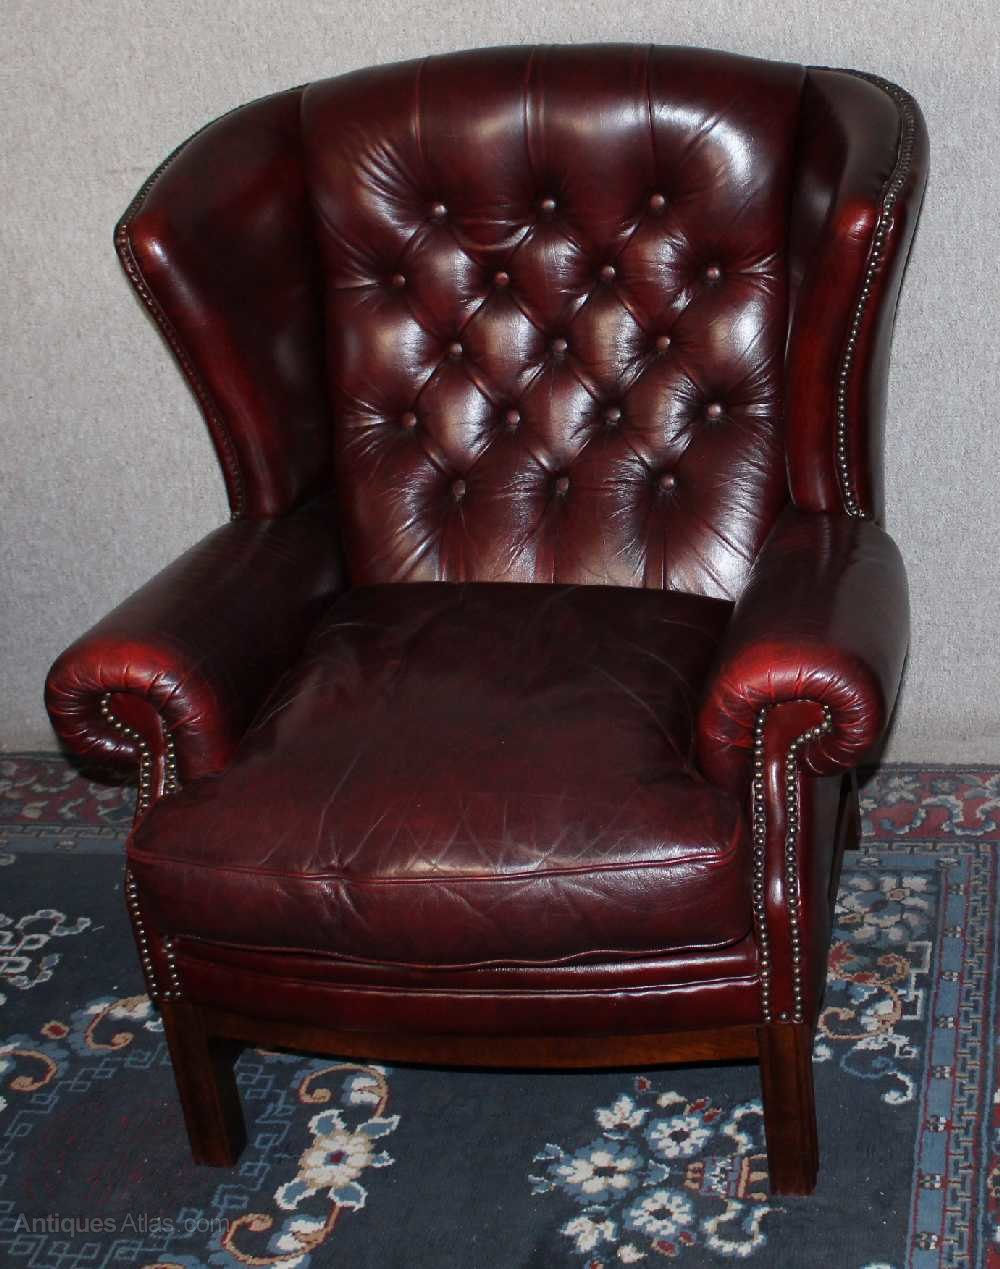 Antiques Atlas - 1960s Red Burgundy Leather Wing Armchair